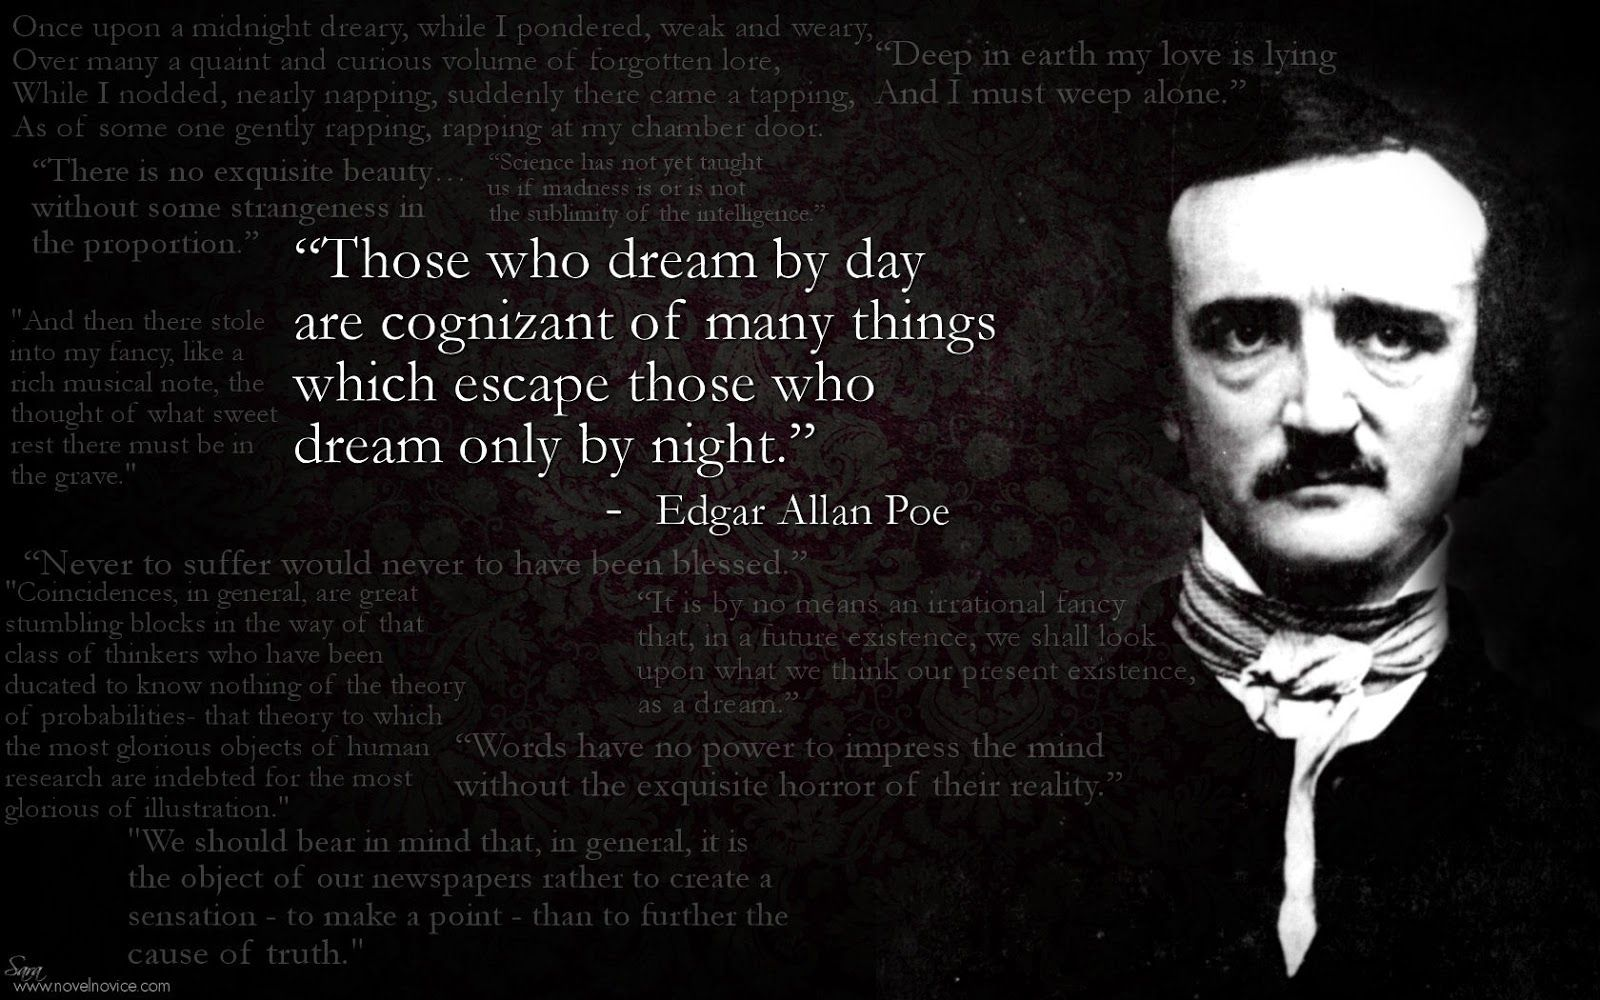 symbolism and irony used in edgar allan A summary of themes in edgar allan poe's poe's short stories learn exactly what happened in this chapter, scene, or section of poe's short stories and what it means perfect for acing essays, tests, and quizzes, as well as for writing lesson plans.